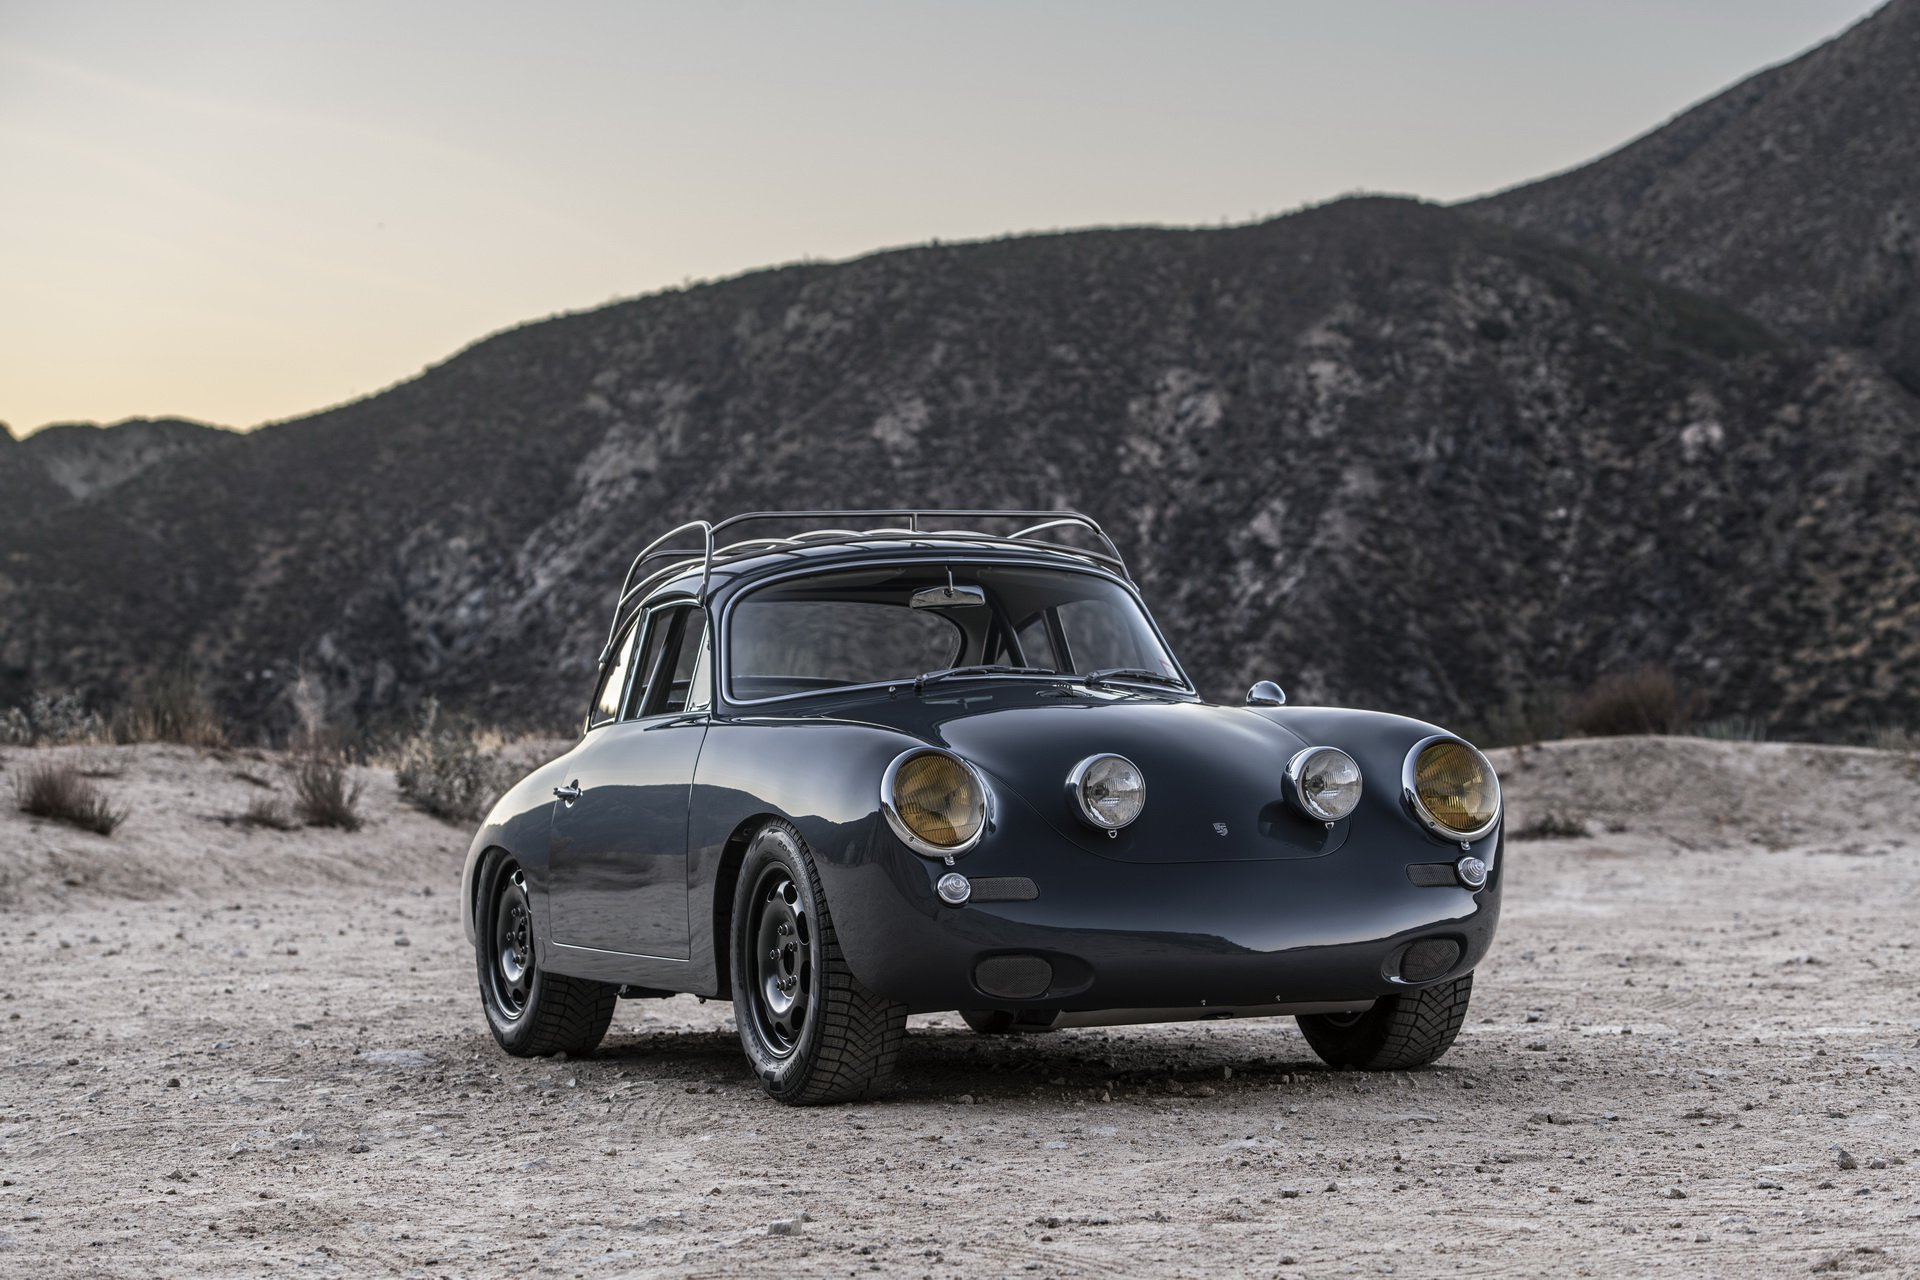 AWD Porsche 356 Coupe by Emory Motorsports (62)